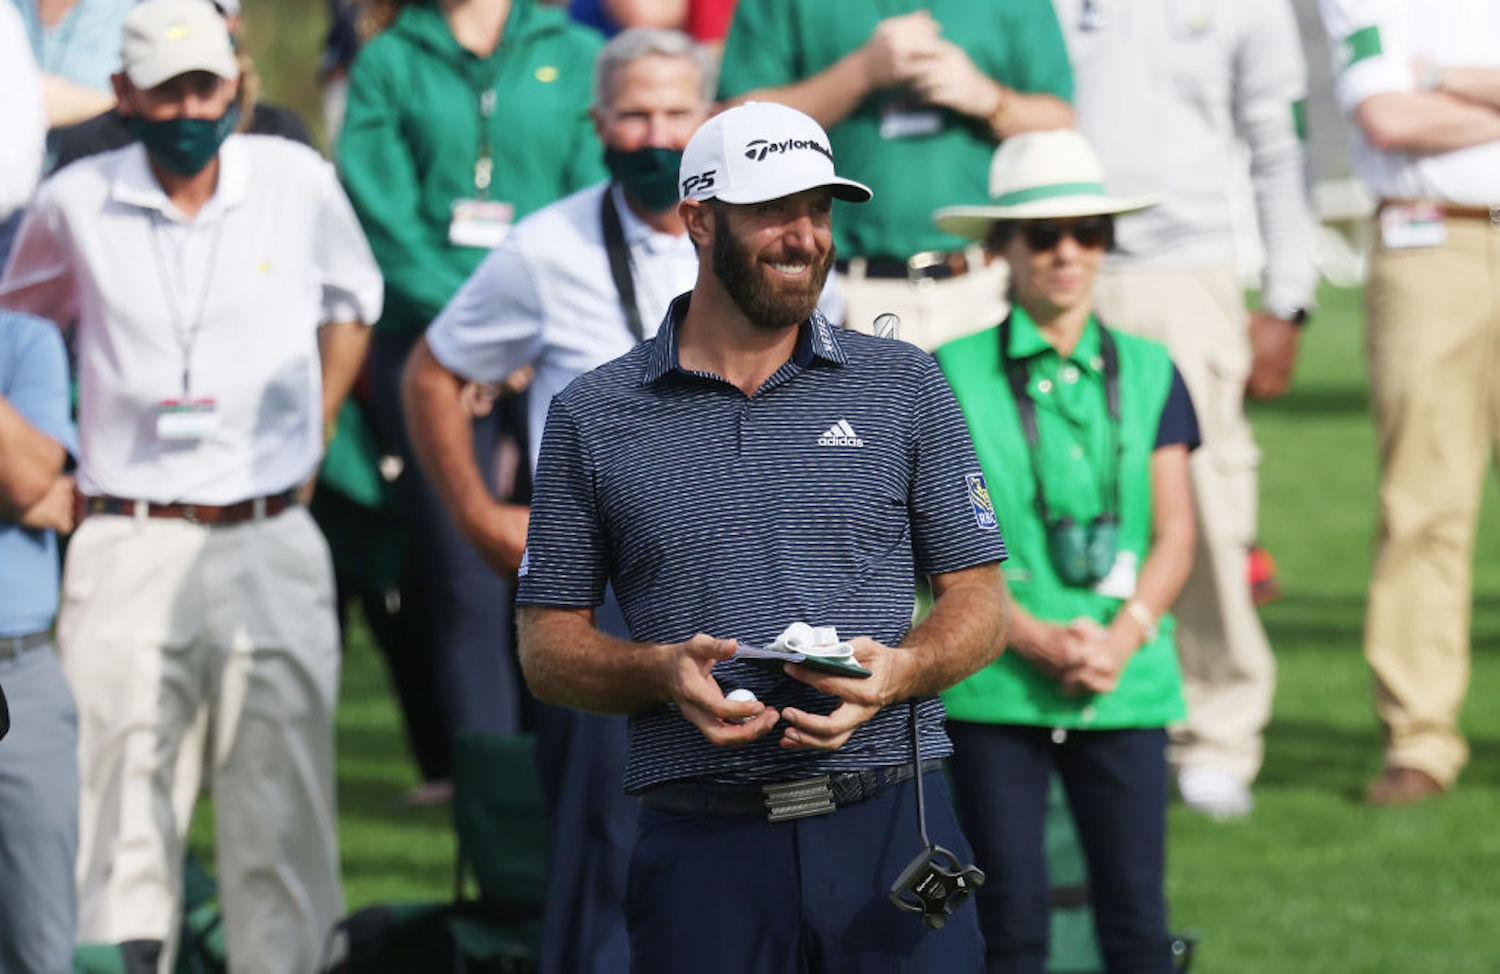 Dustin Johnson won the 2020 Masters Tournament for his first green jacket, and he accomplished something never done before in the process.